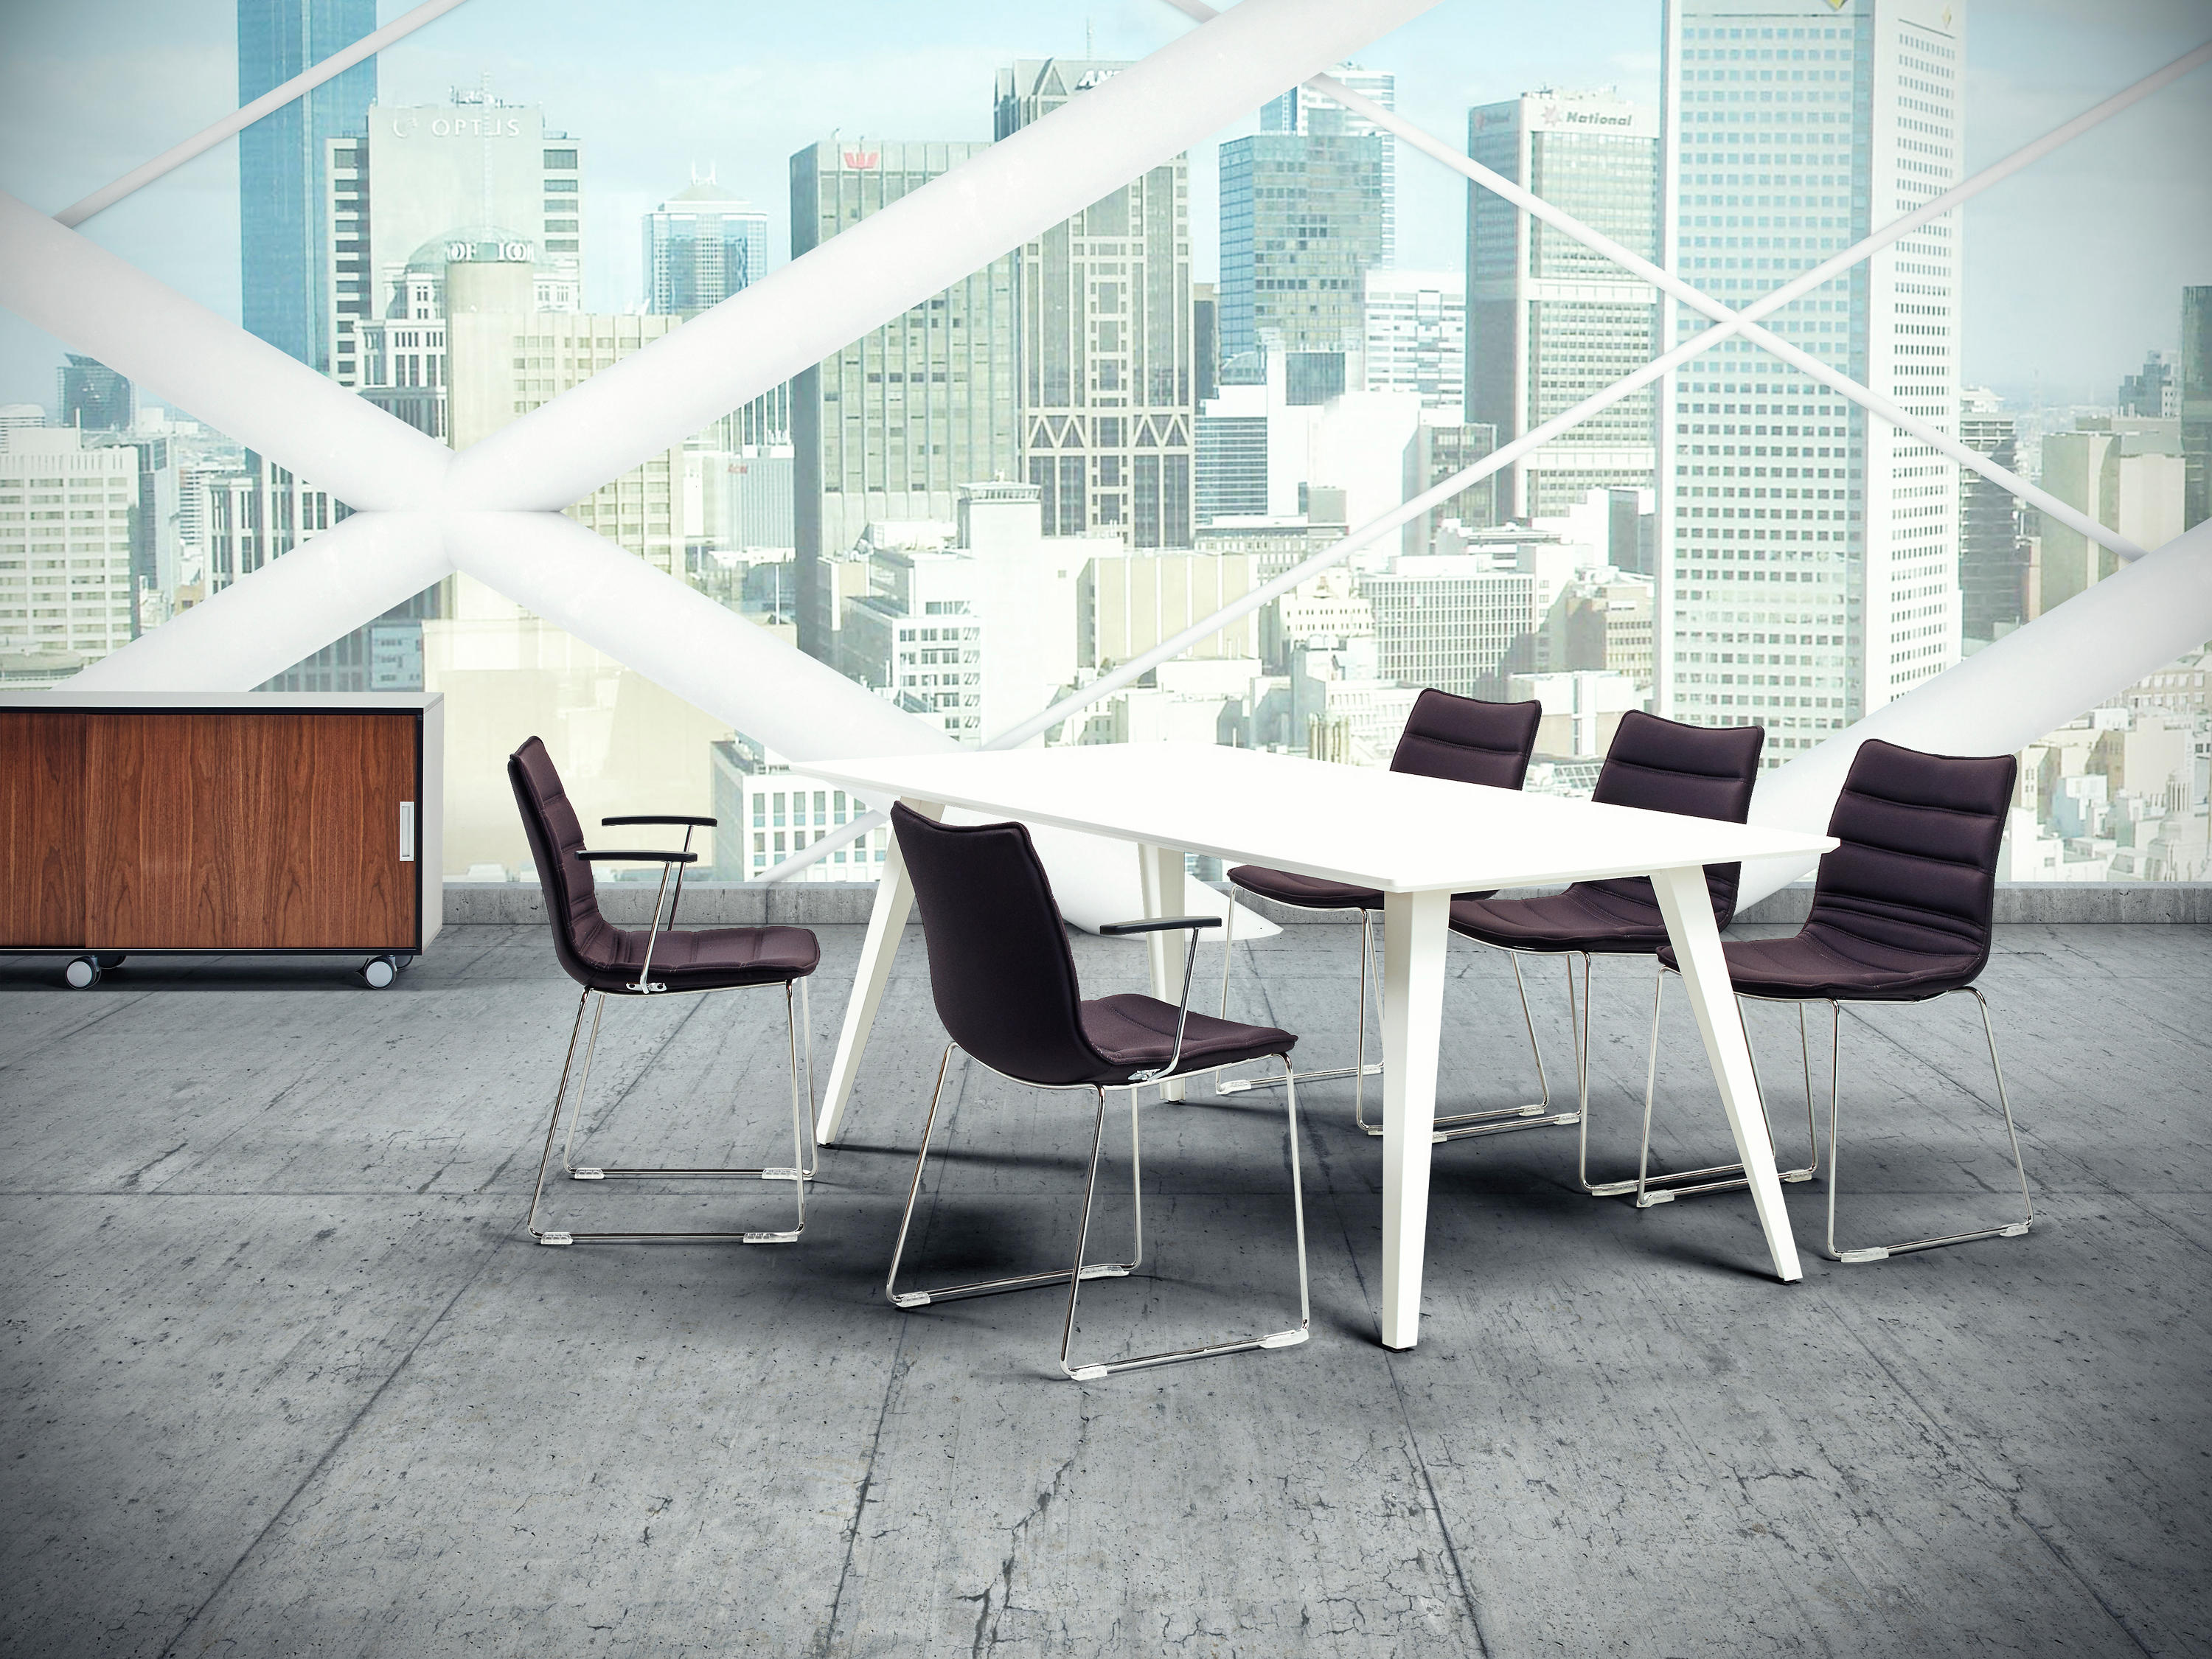 S10 Chair Chairs From Cube Design Architonic